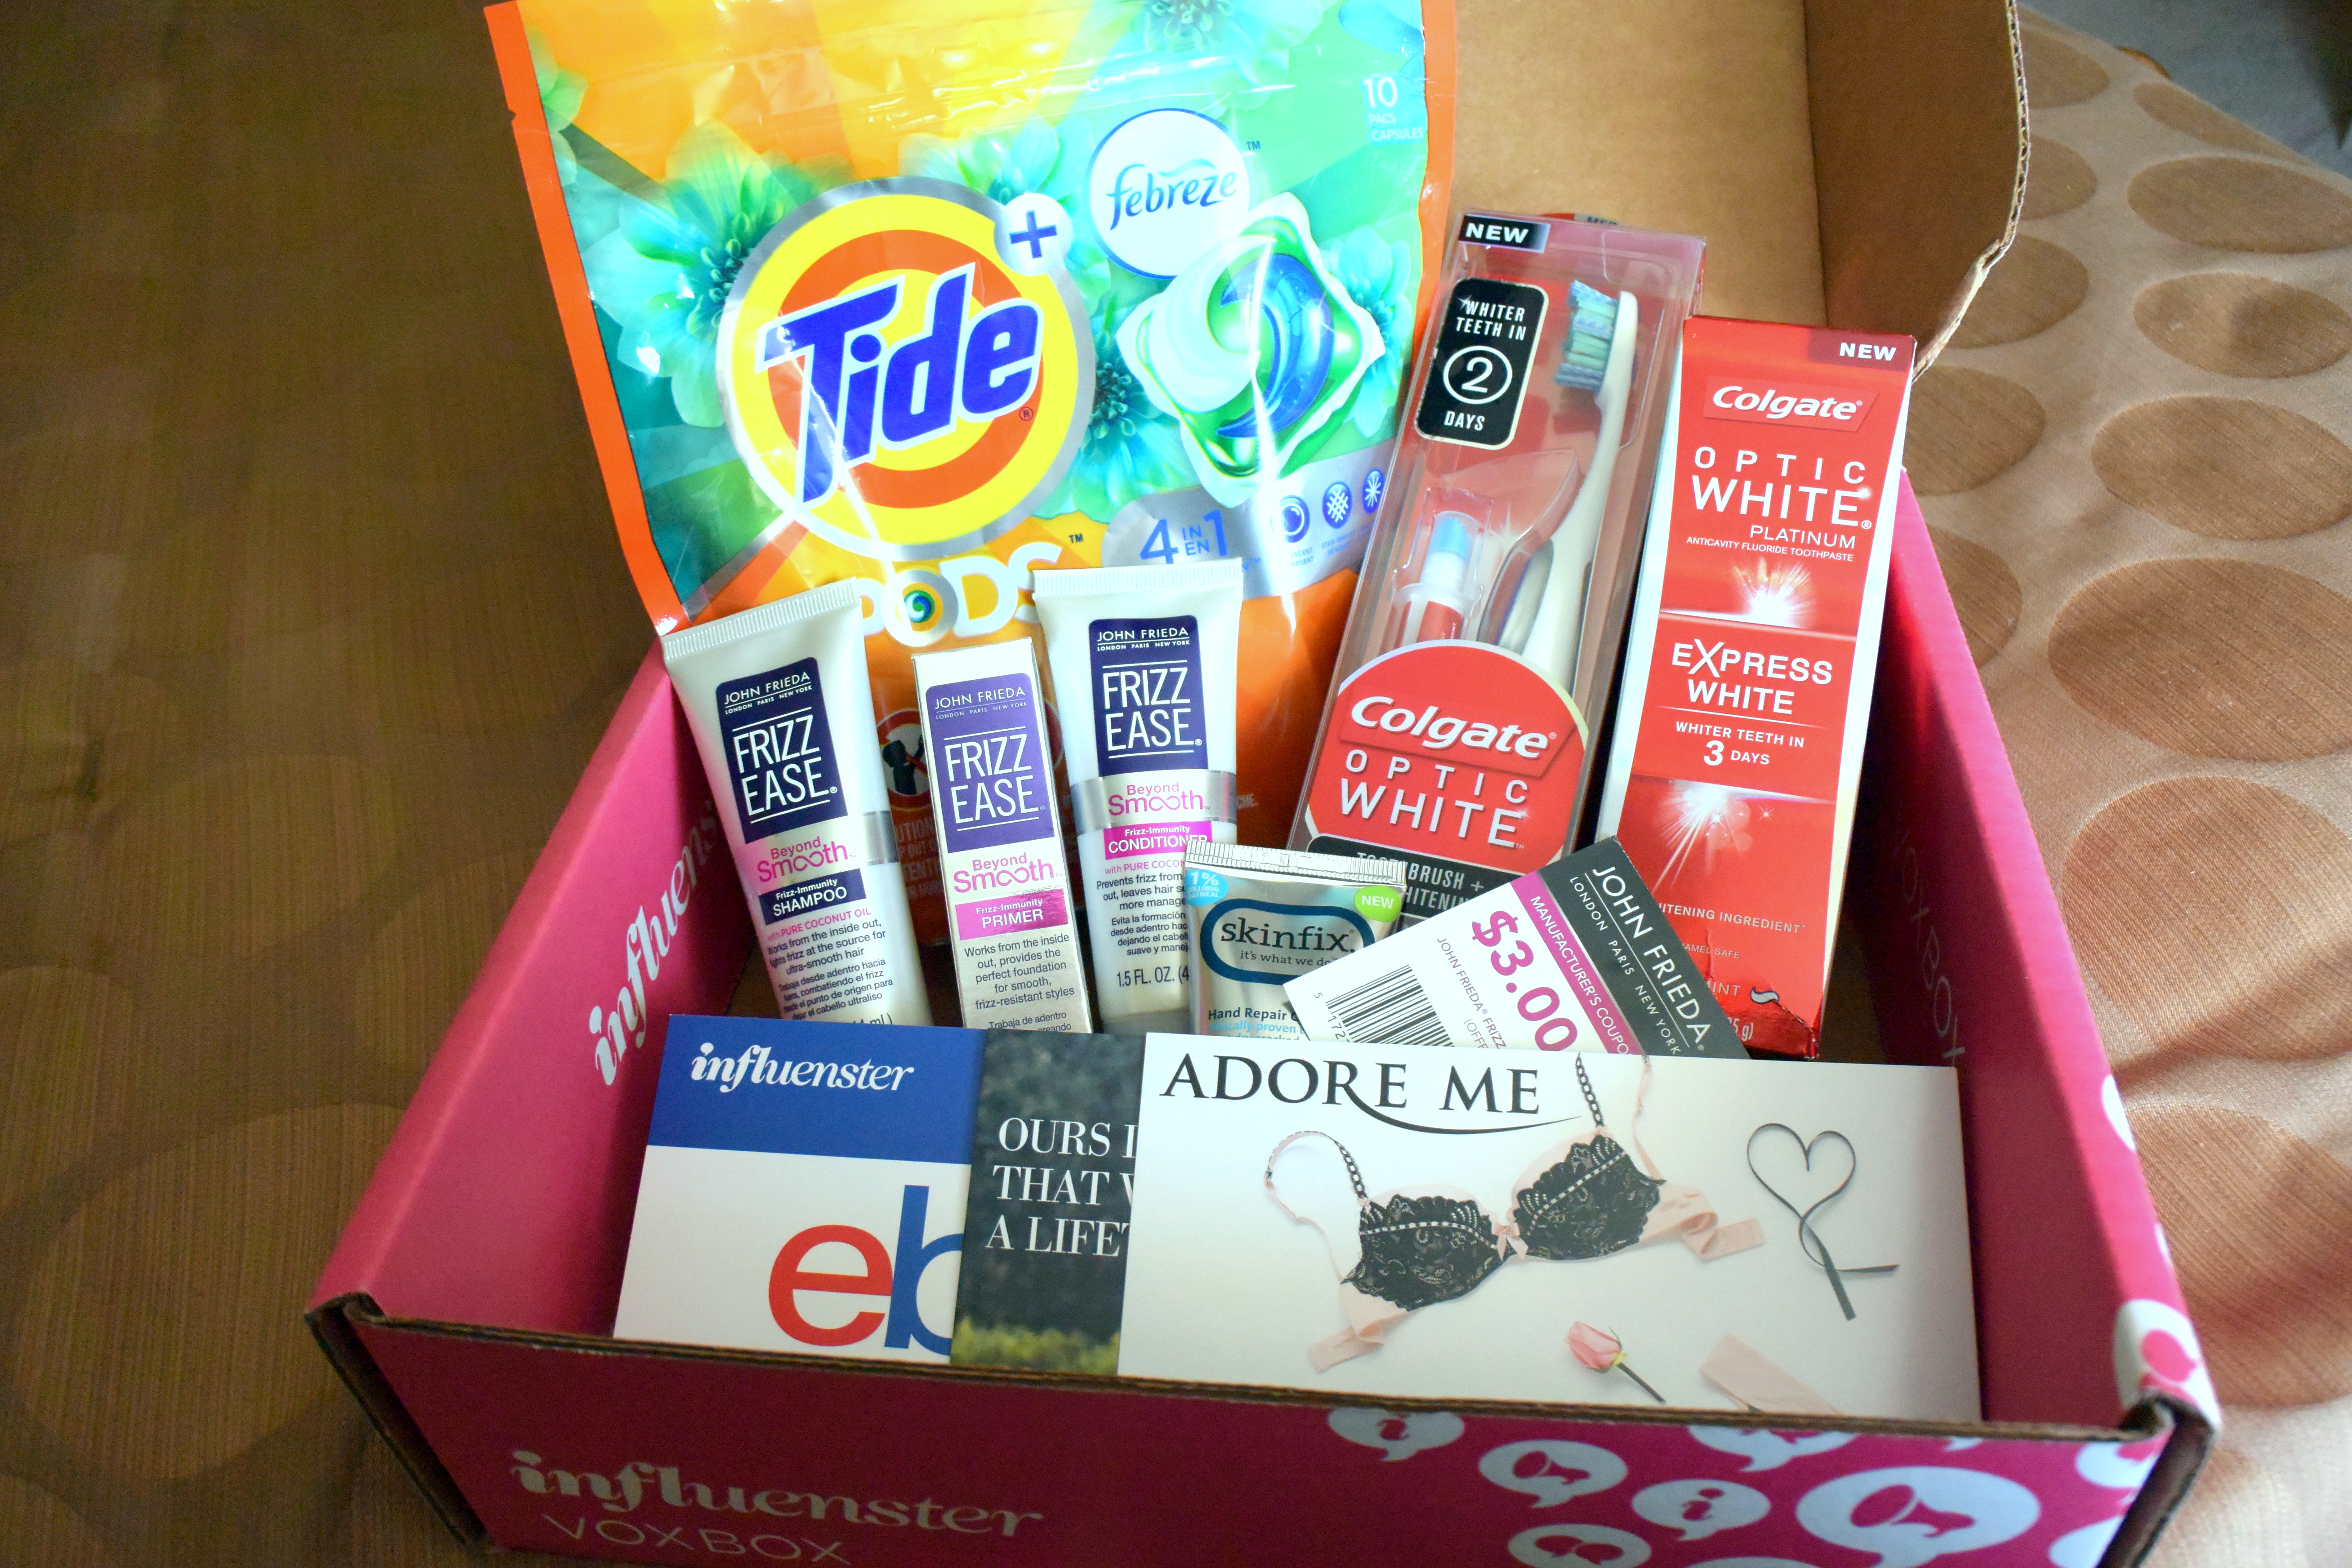 Influenster is a community of trendsetters, social media hotshots, and educated consumers who live to give opinions of products and experiences. We invite our most active and social media savvy members to participate in exclusive rewards campaigns, such as VoxBox, Twitter Chats, and Fun contest